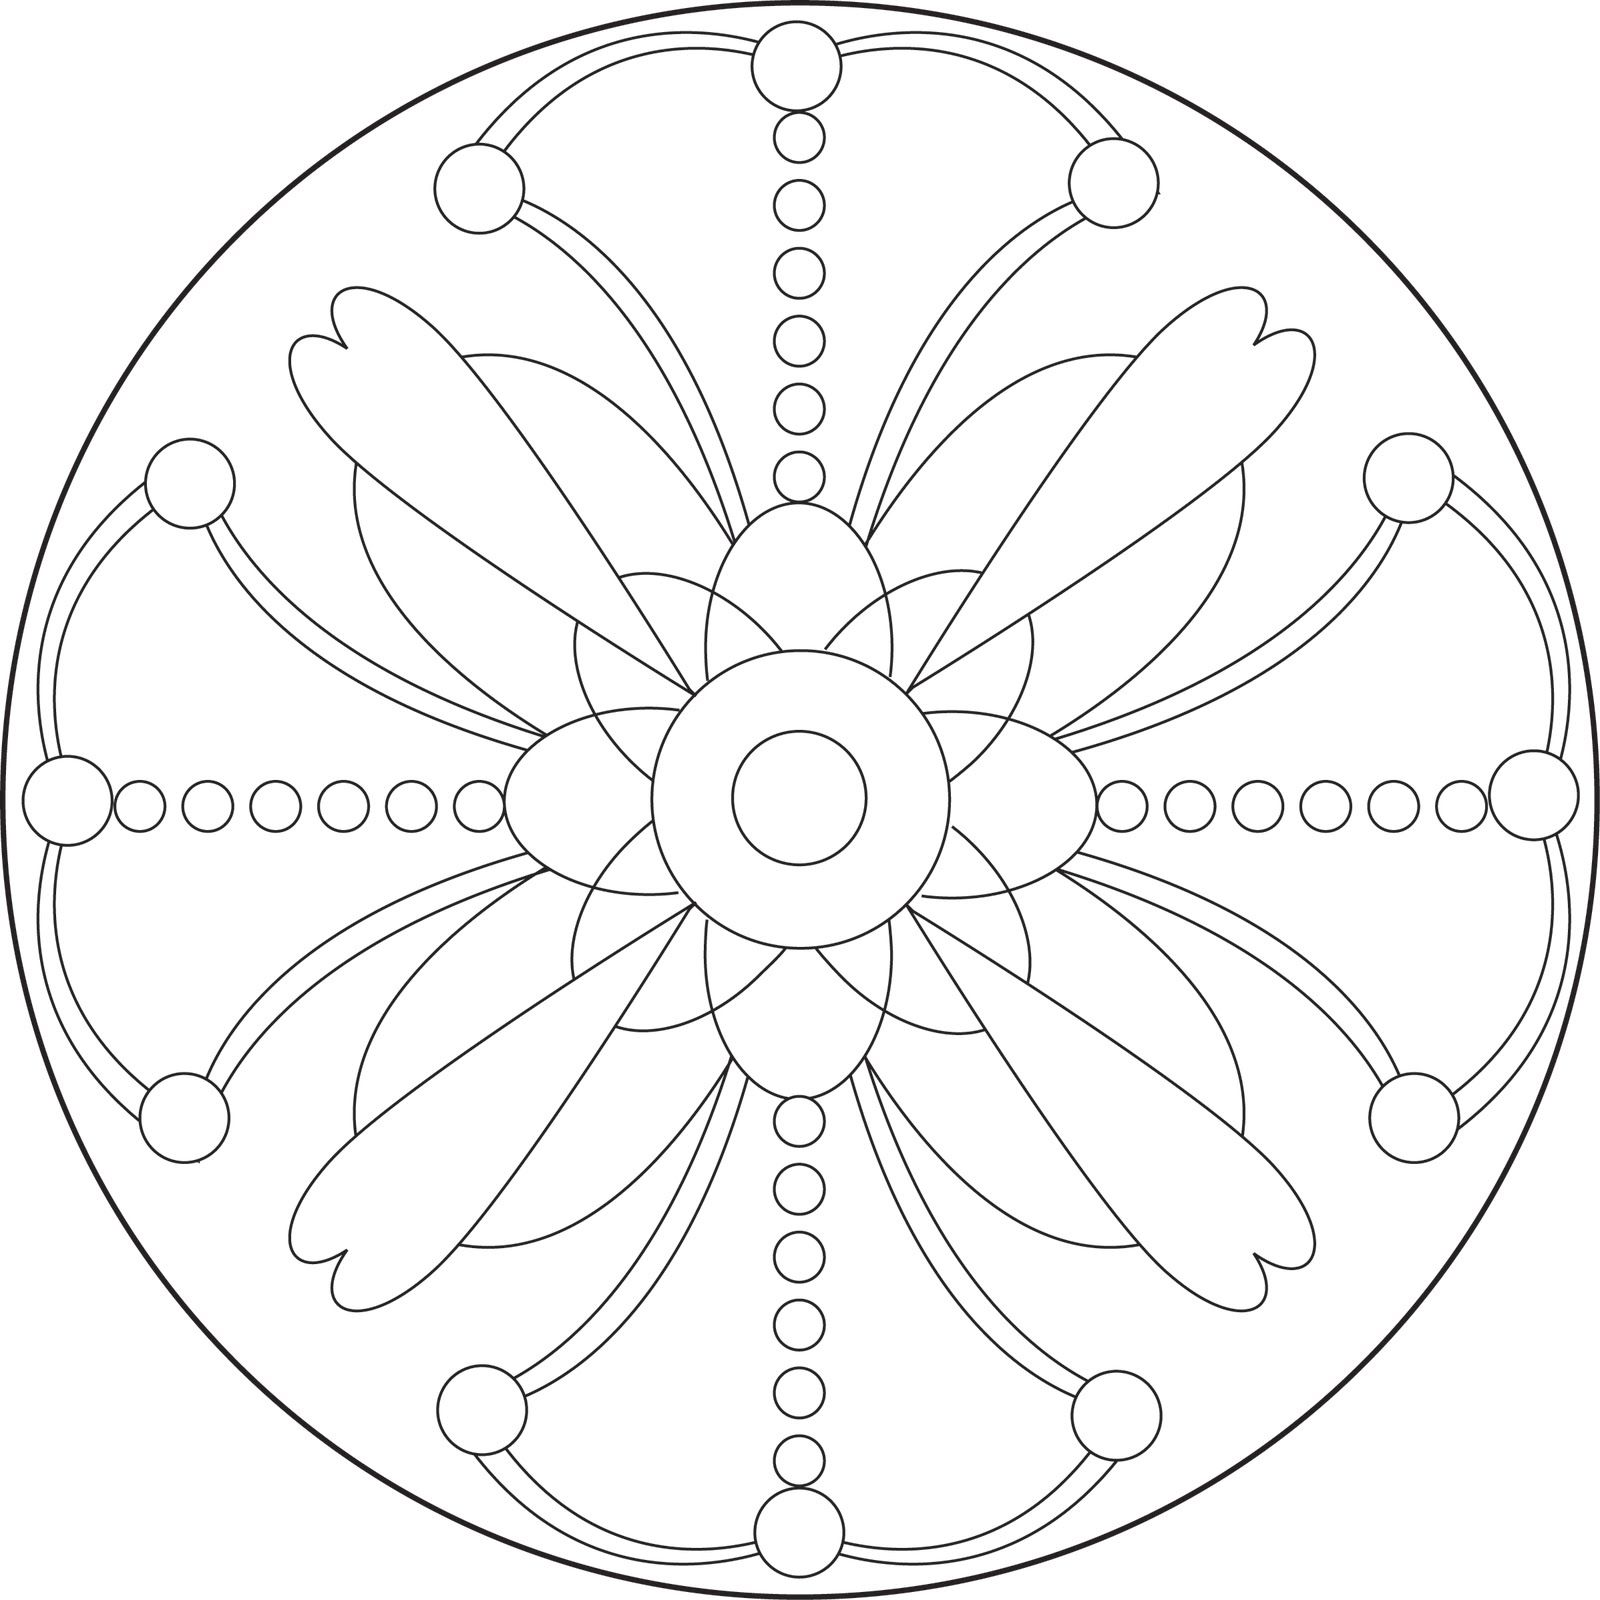 Printable Mandala Patterns | Simple Mandala Coloring Pages ...